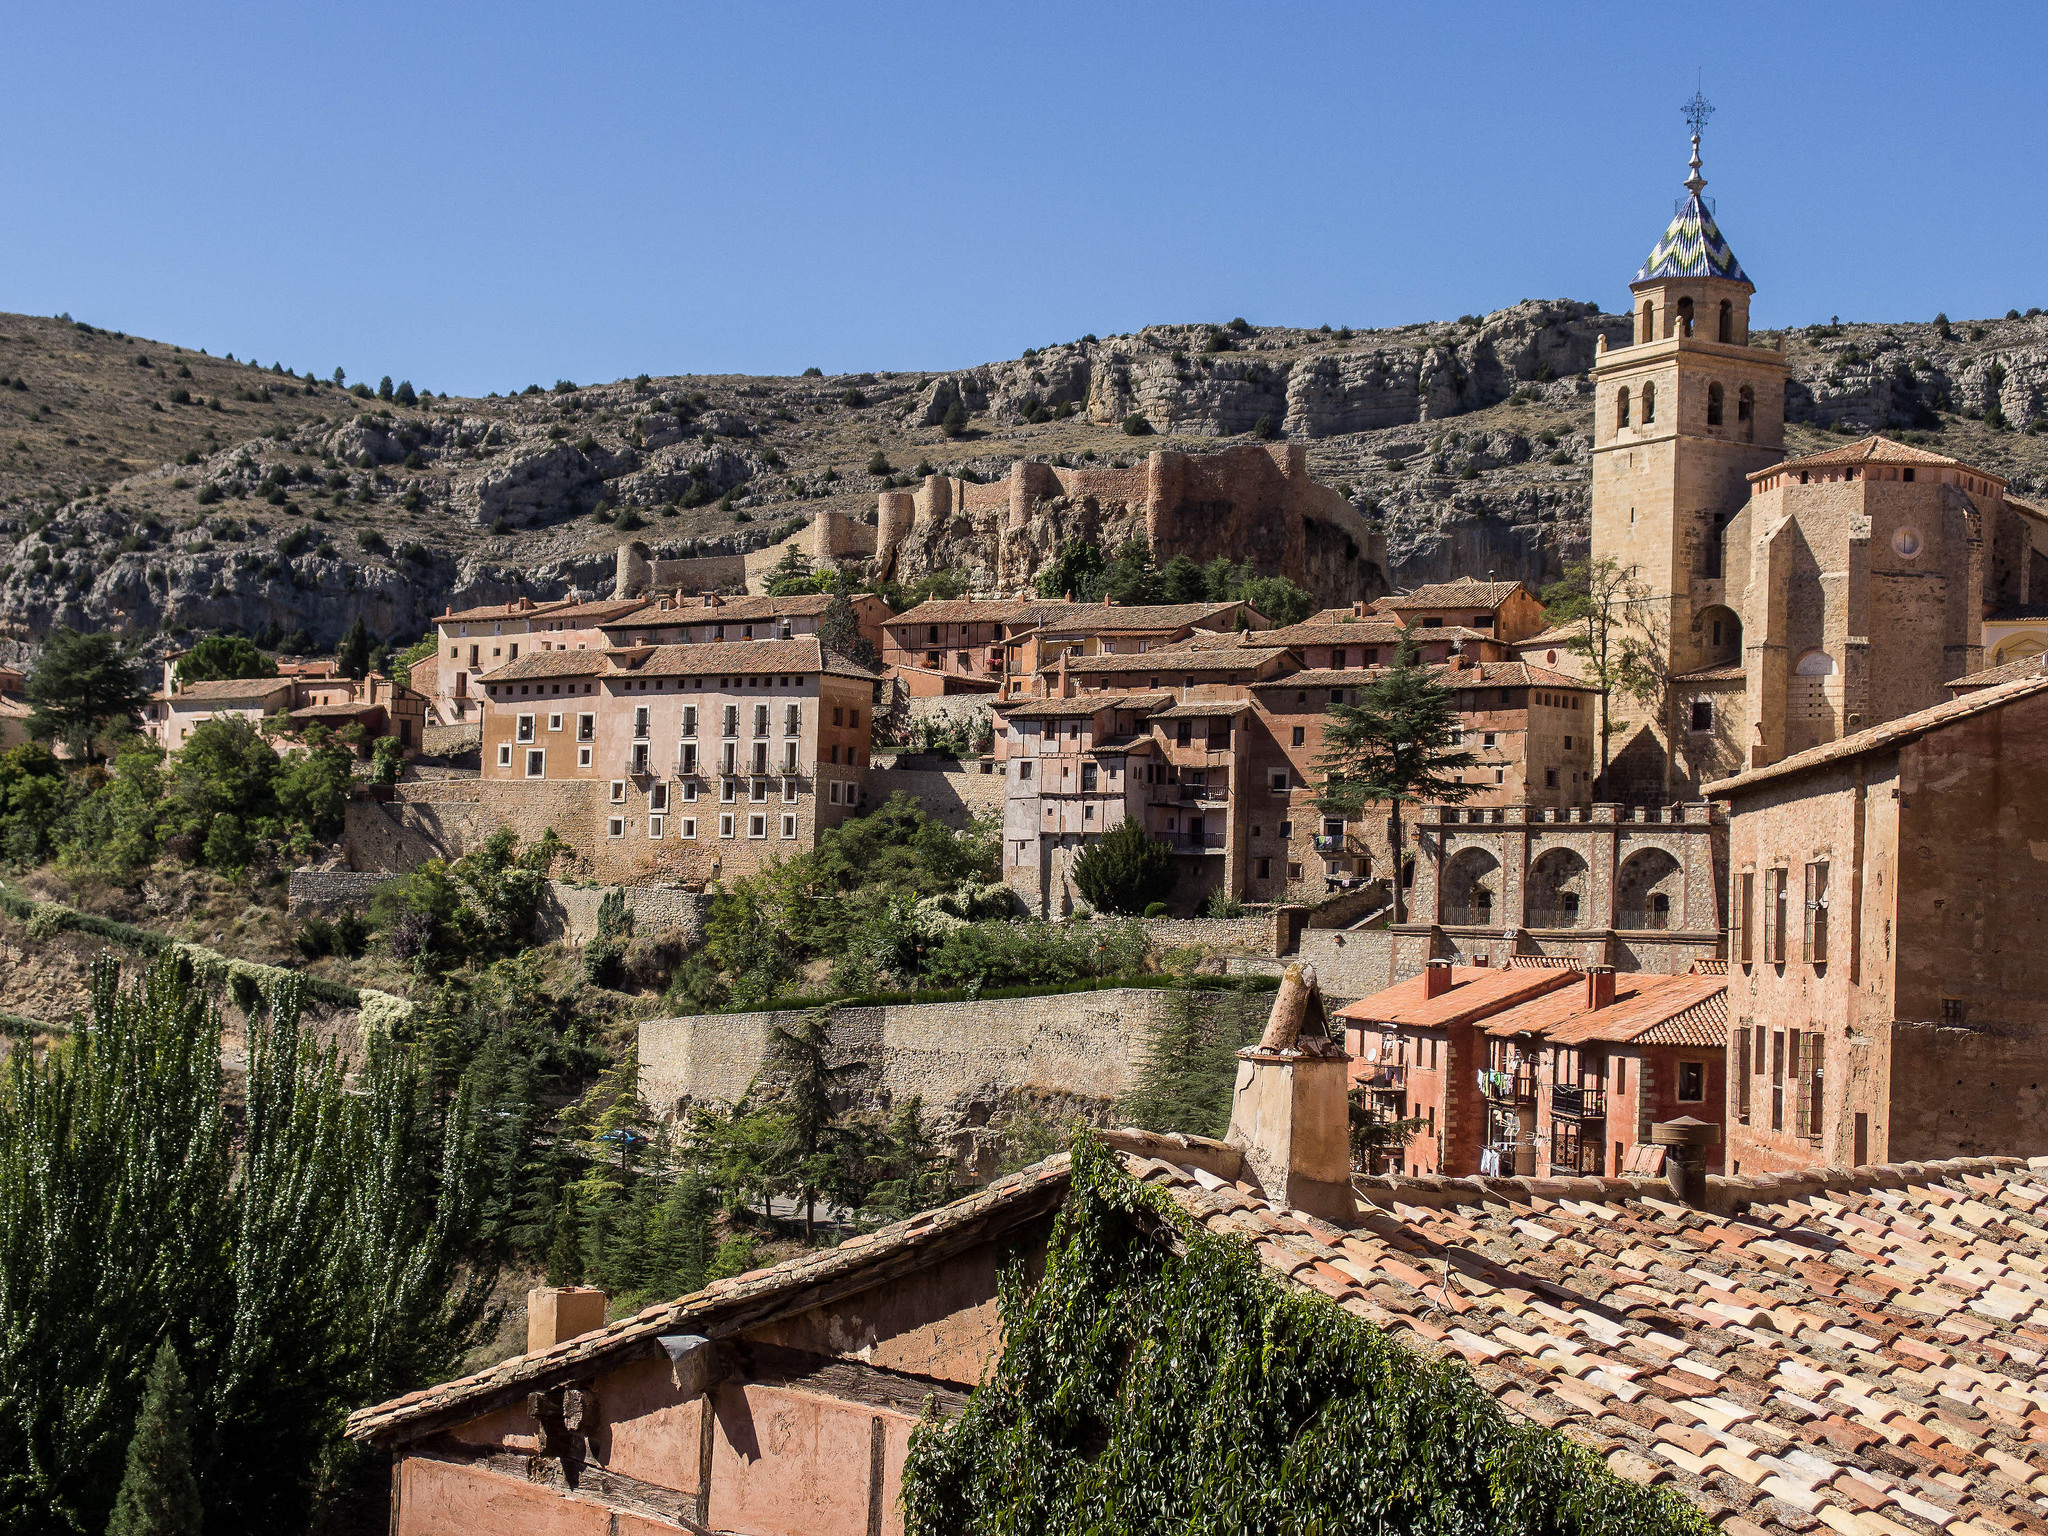 The town of Albarracín © FRANCIS RAHER